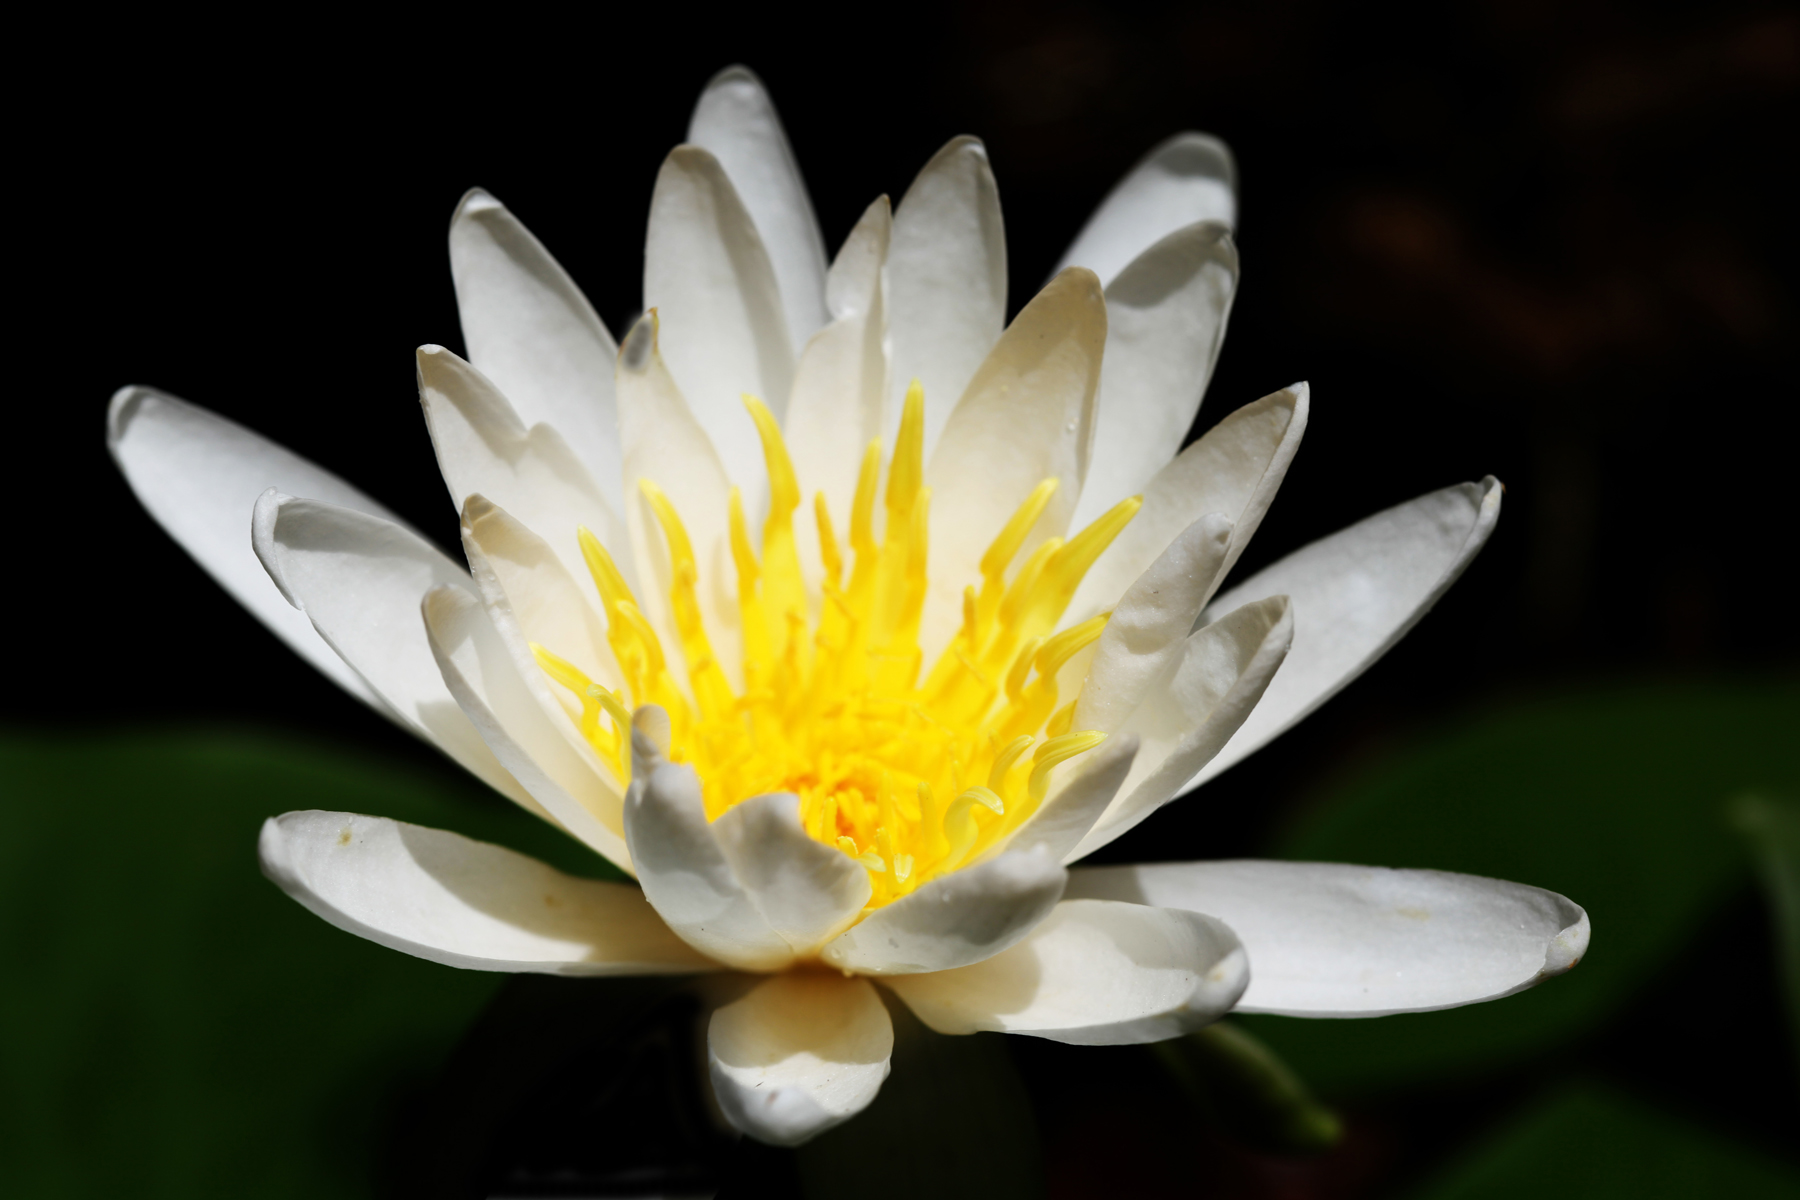 stunning shot of a flourishing water lilly